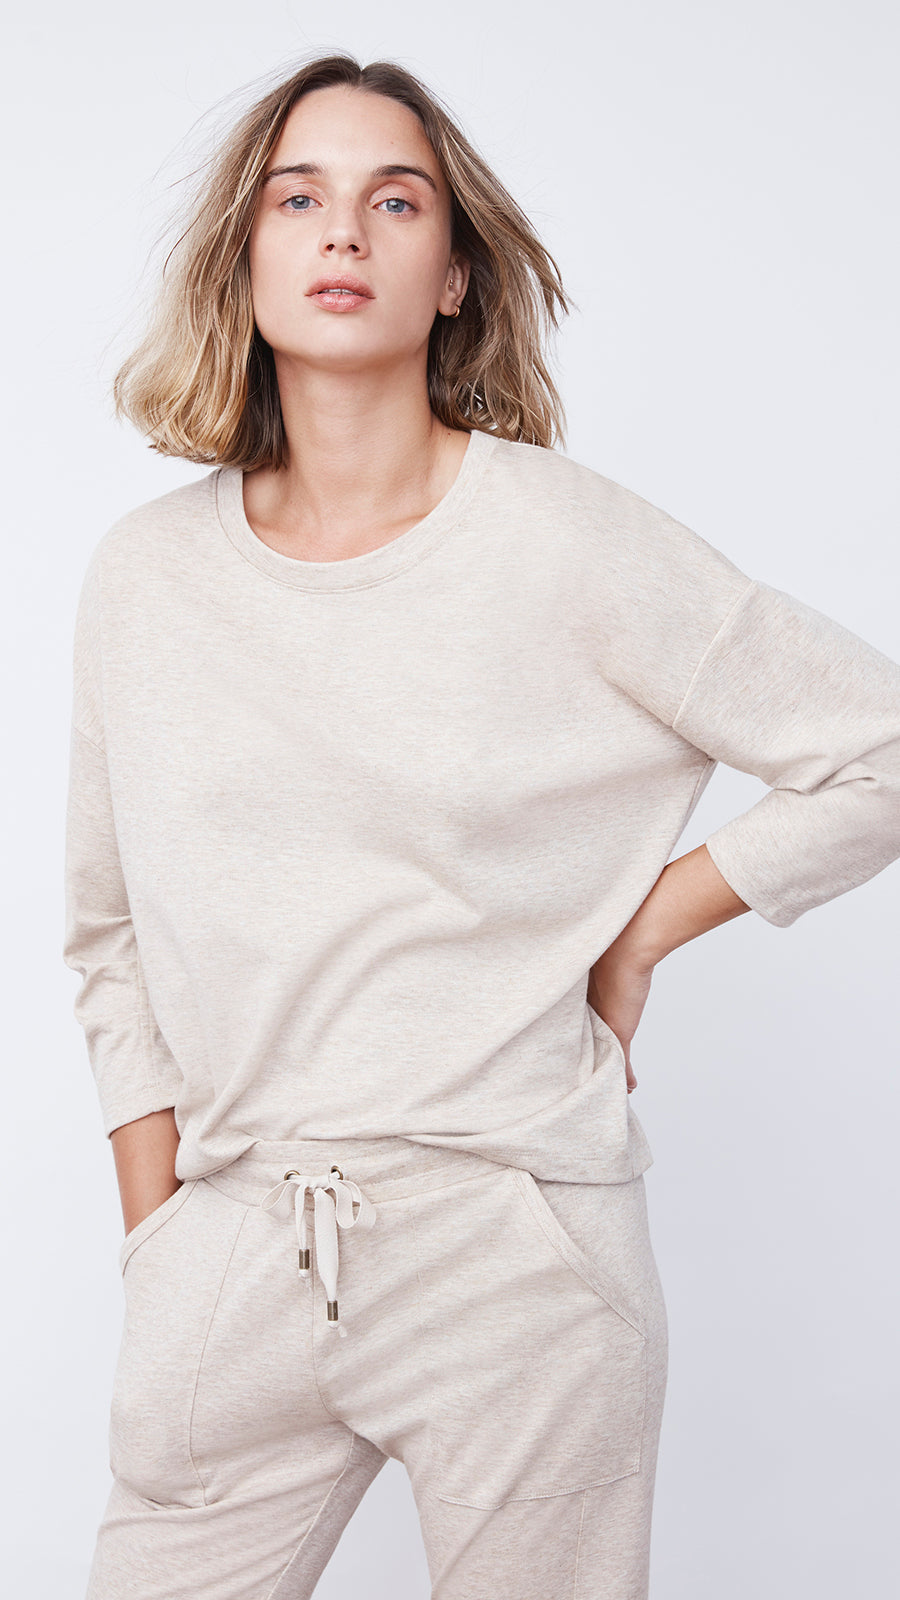 Women's Beige Tuck Sleeve Recycled Sweater by b new york